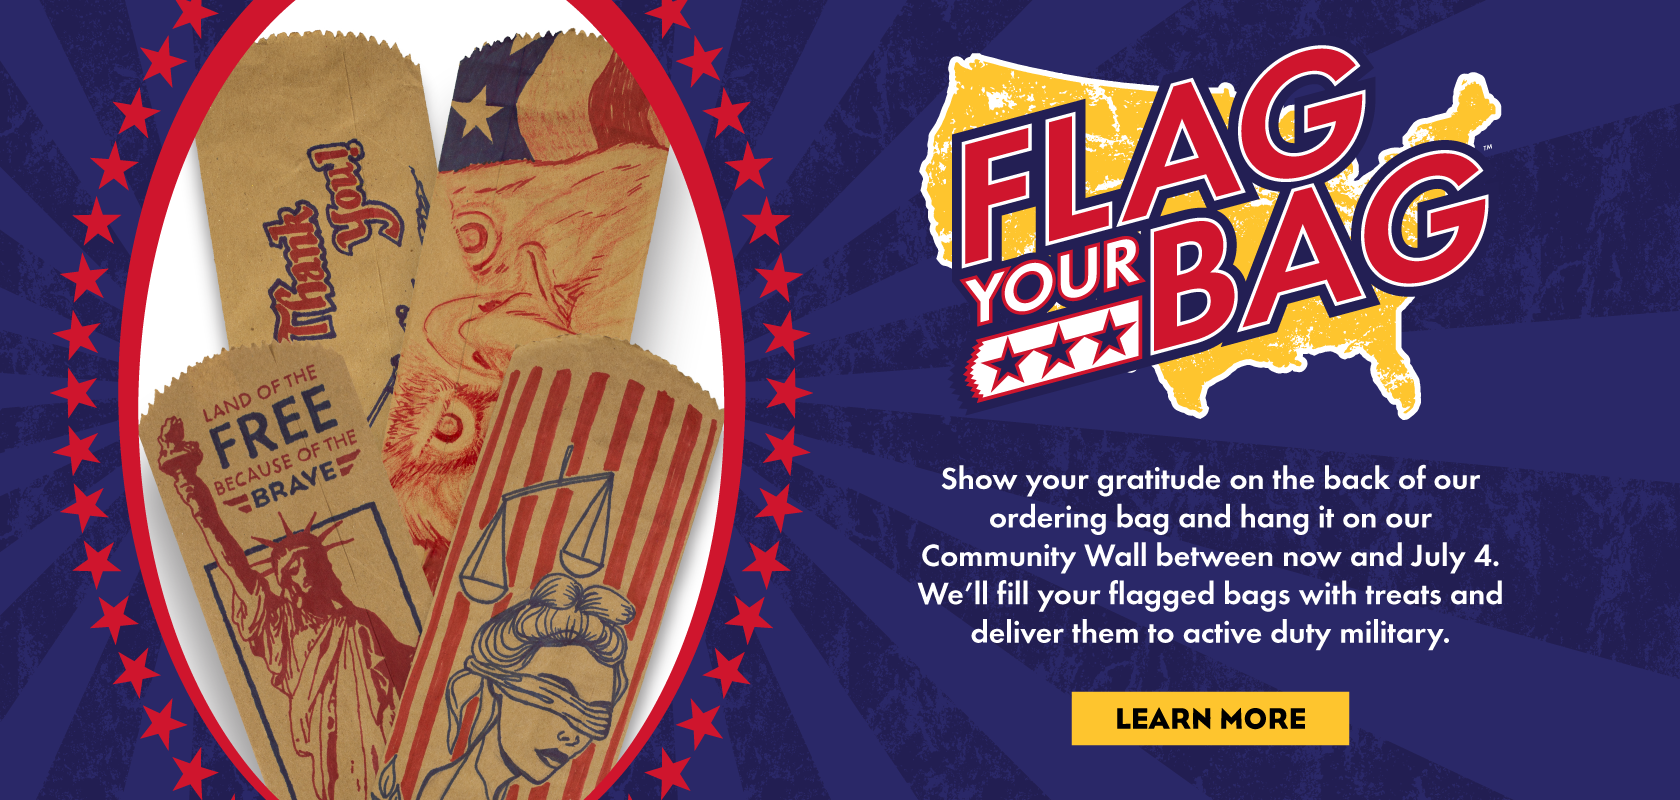 Flag Your Bag!  Show your gratitude on the back of our ordering bag and hang it on our Community Wall through July 4.  Learn More